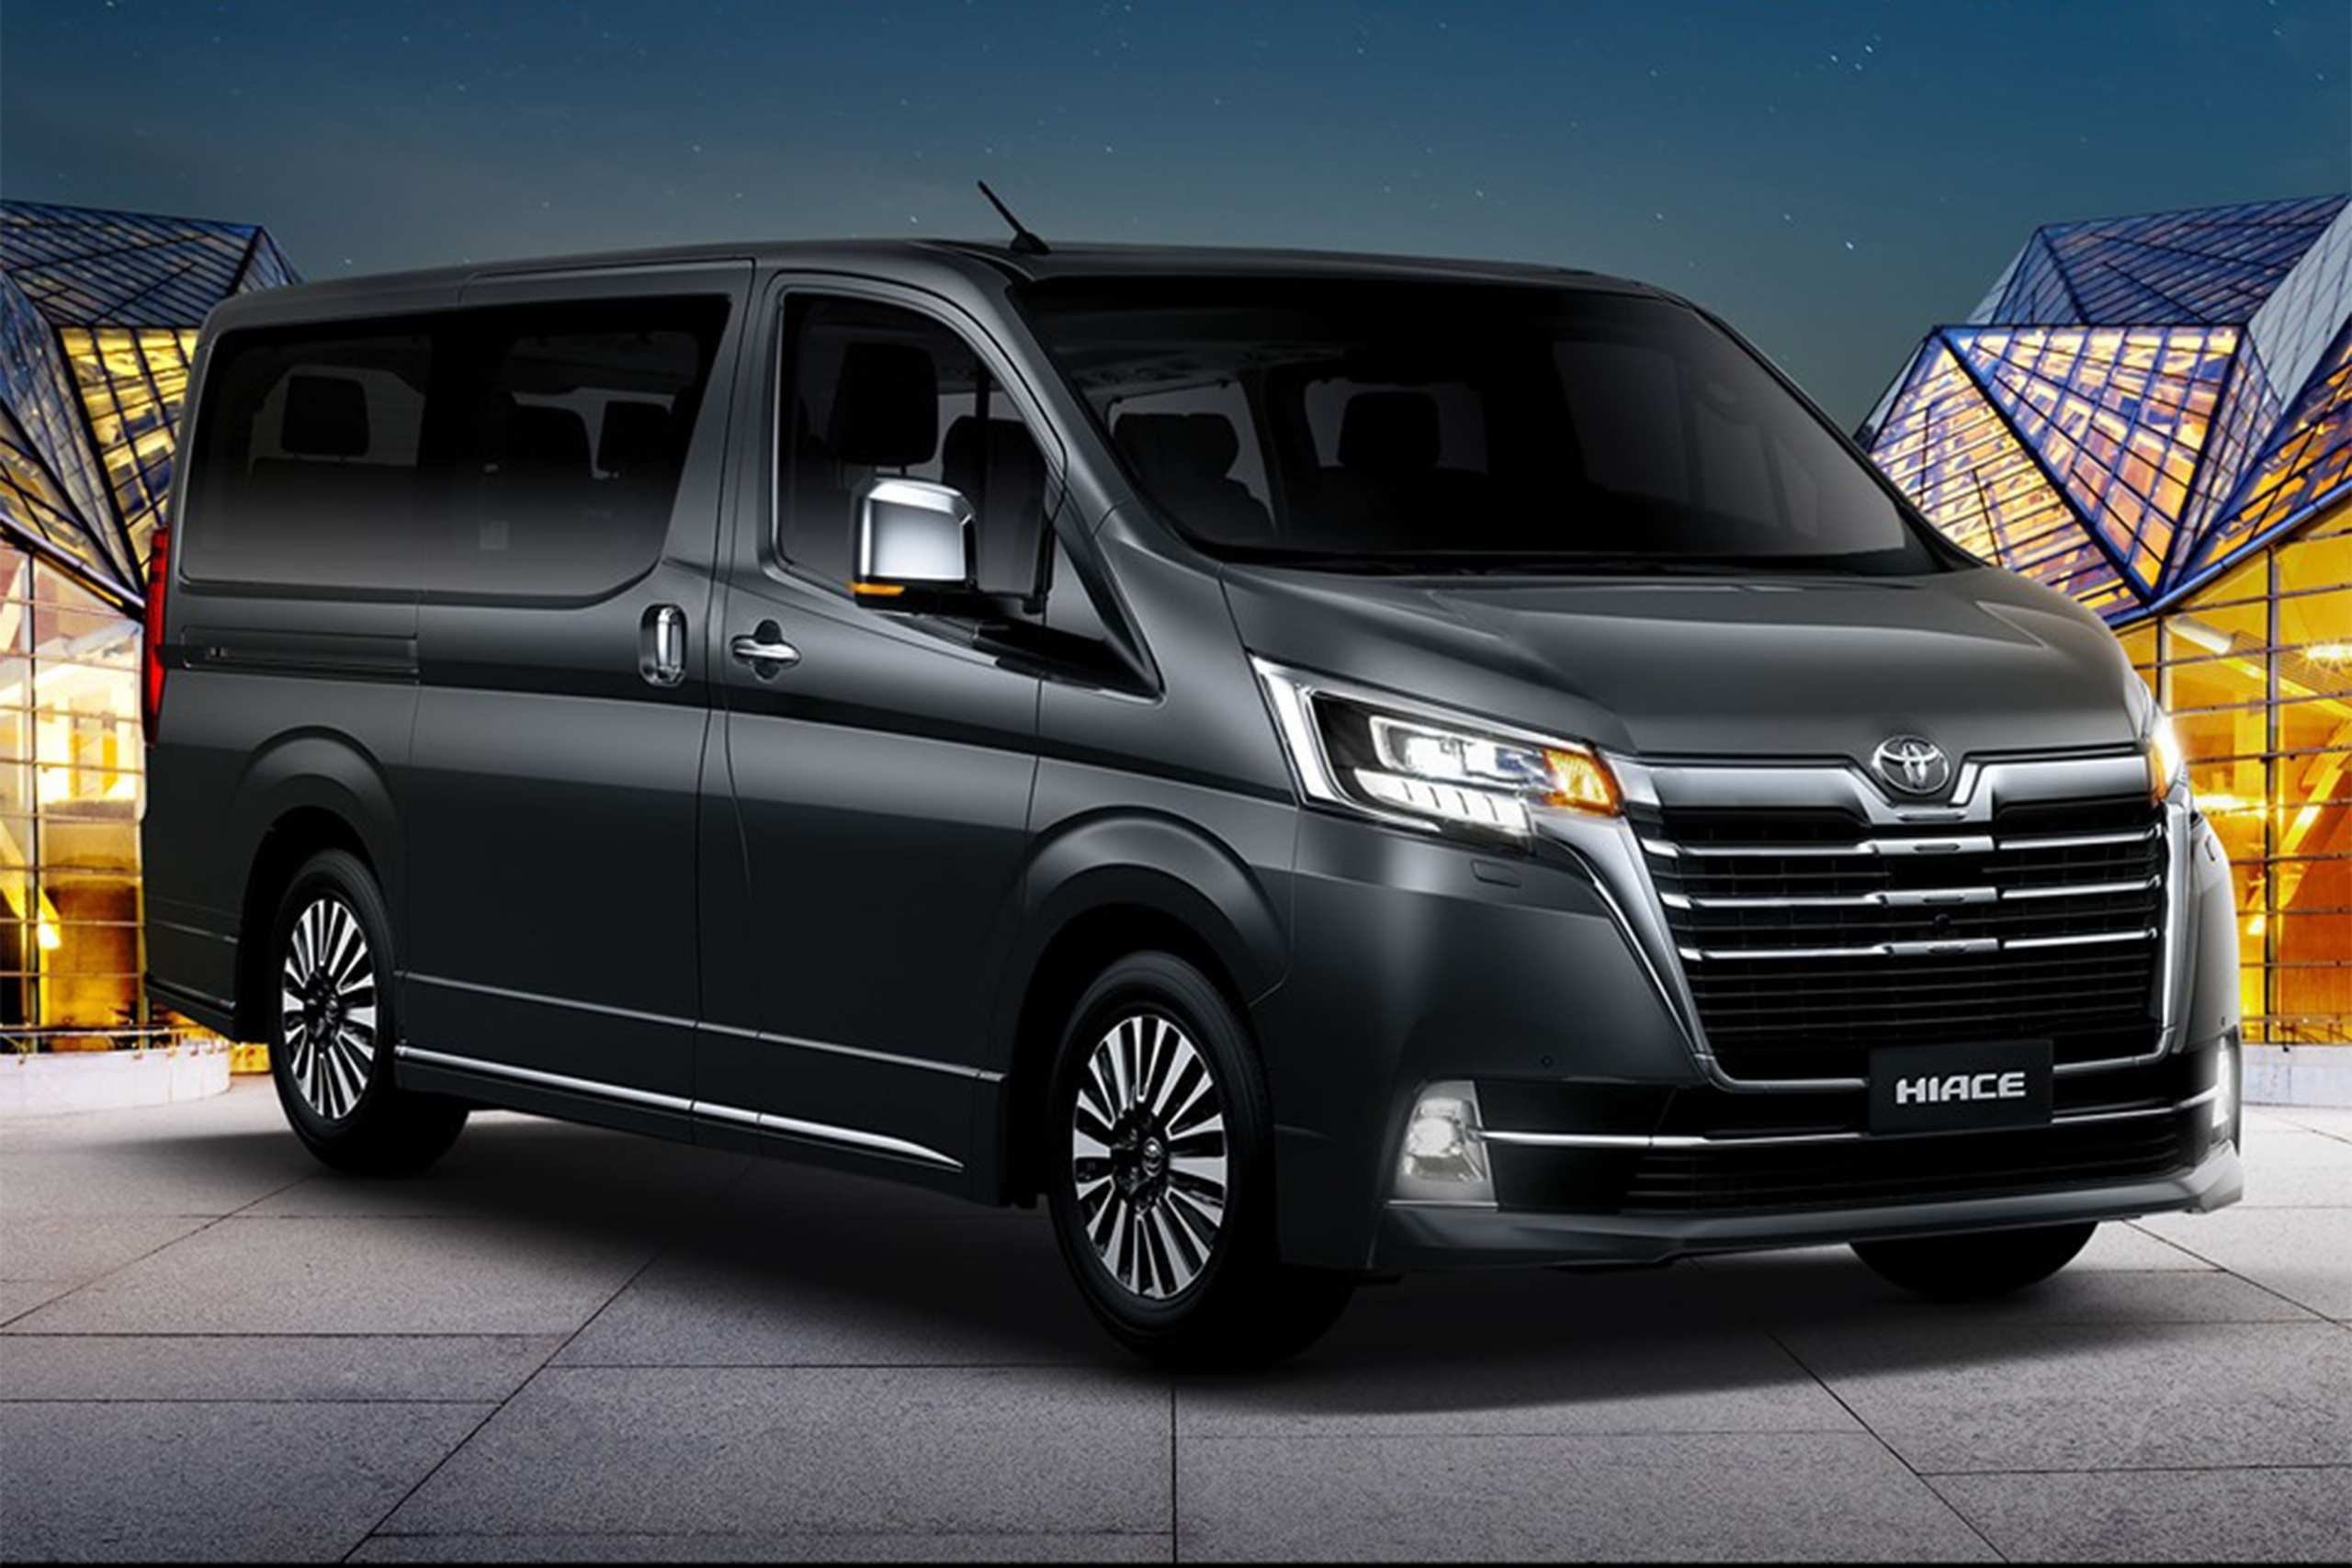 70 A Toyota Hiace 2020 Japan Prices